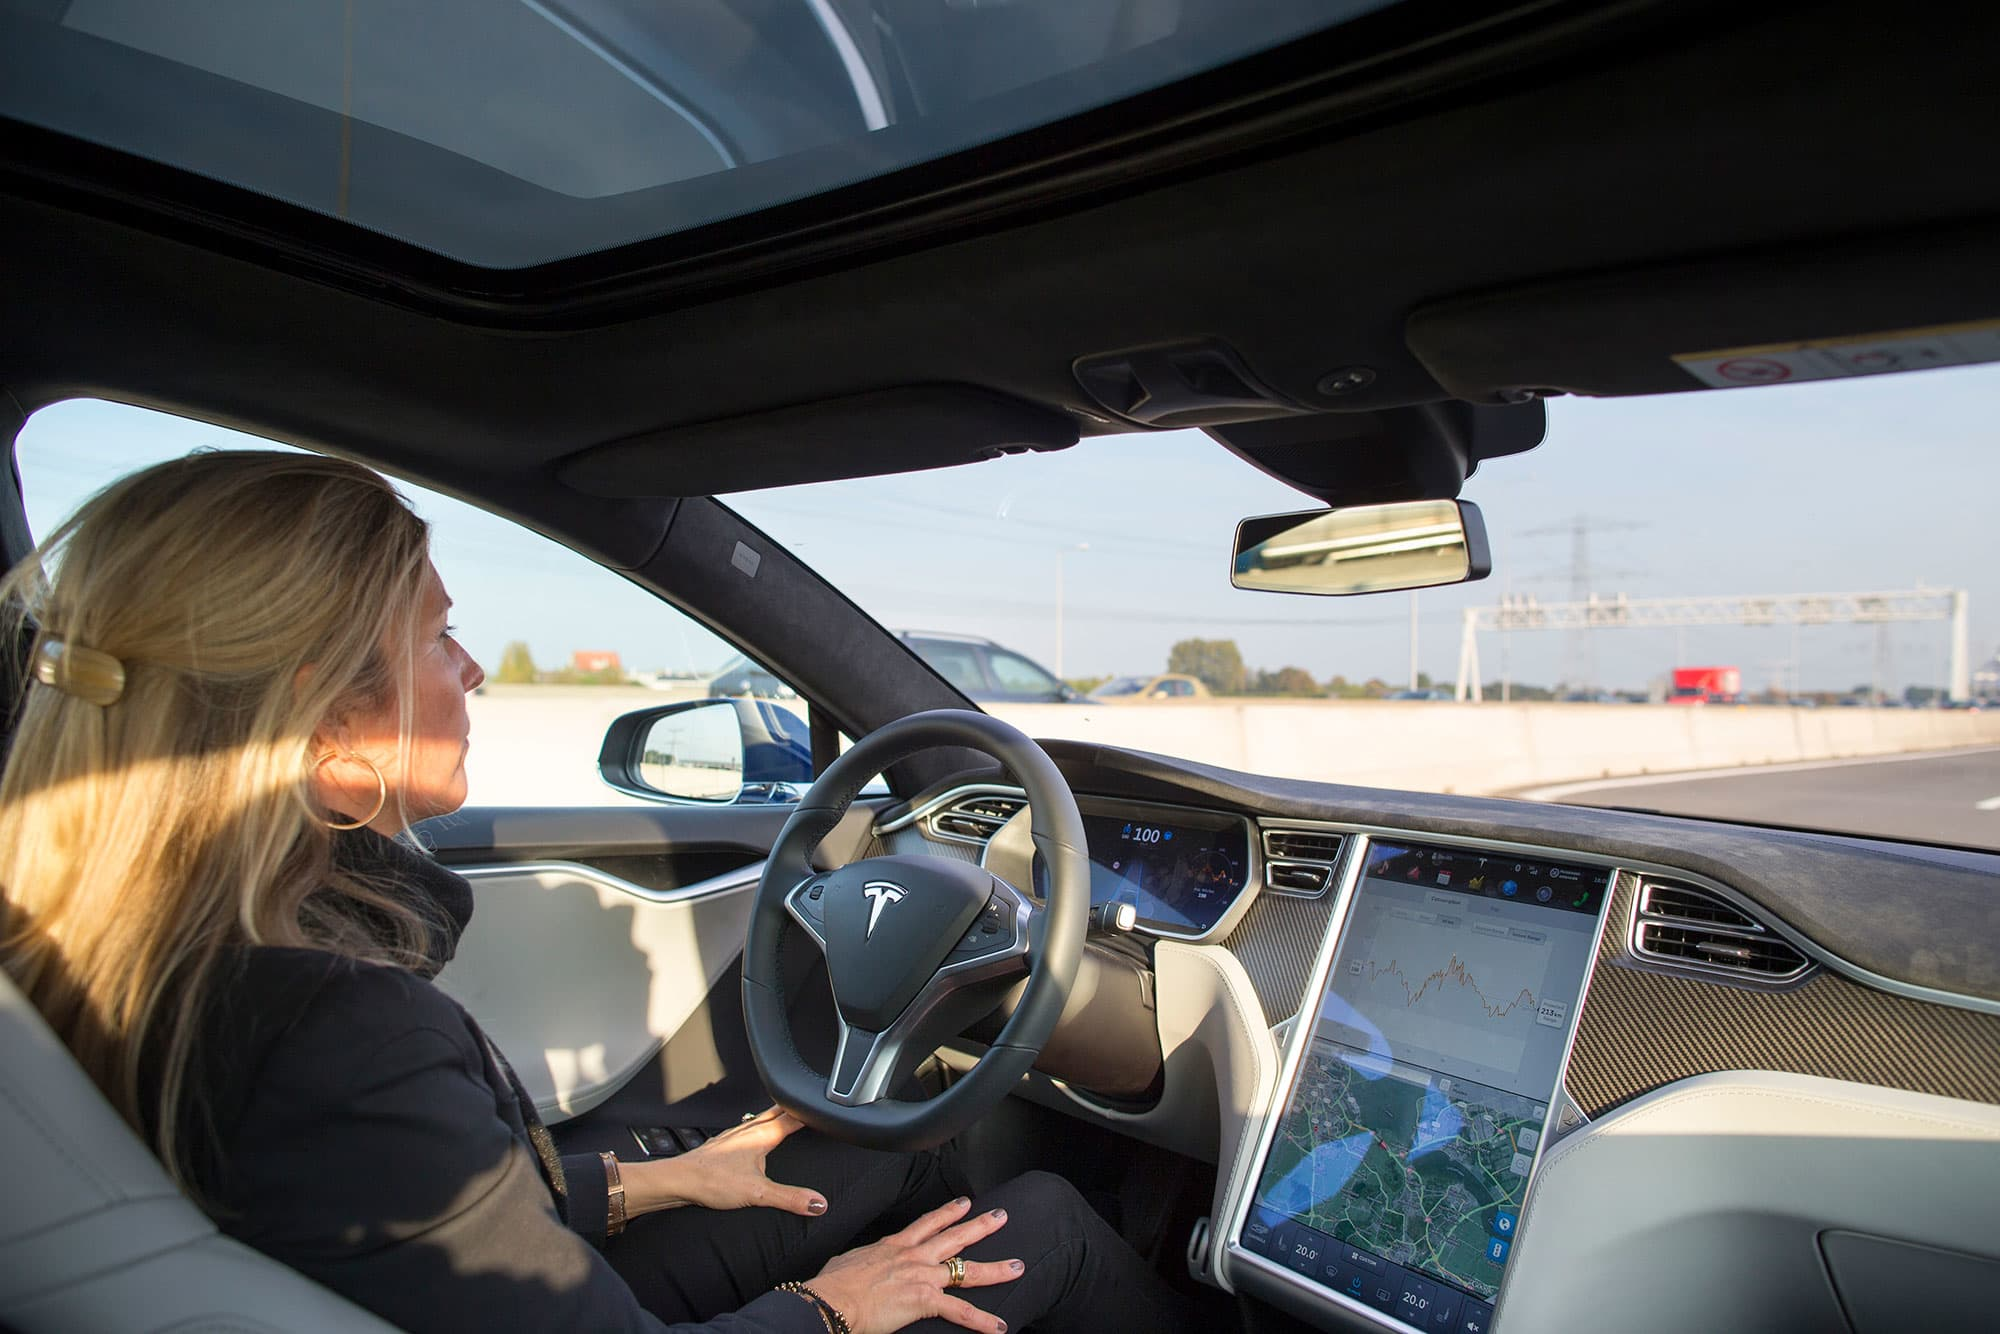 Watch Tesla drivers apparently asleep at the wheel, renewing Autopilot safety questions